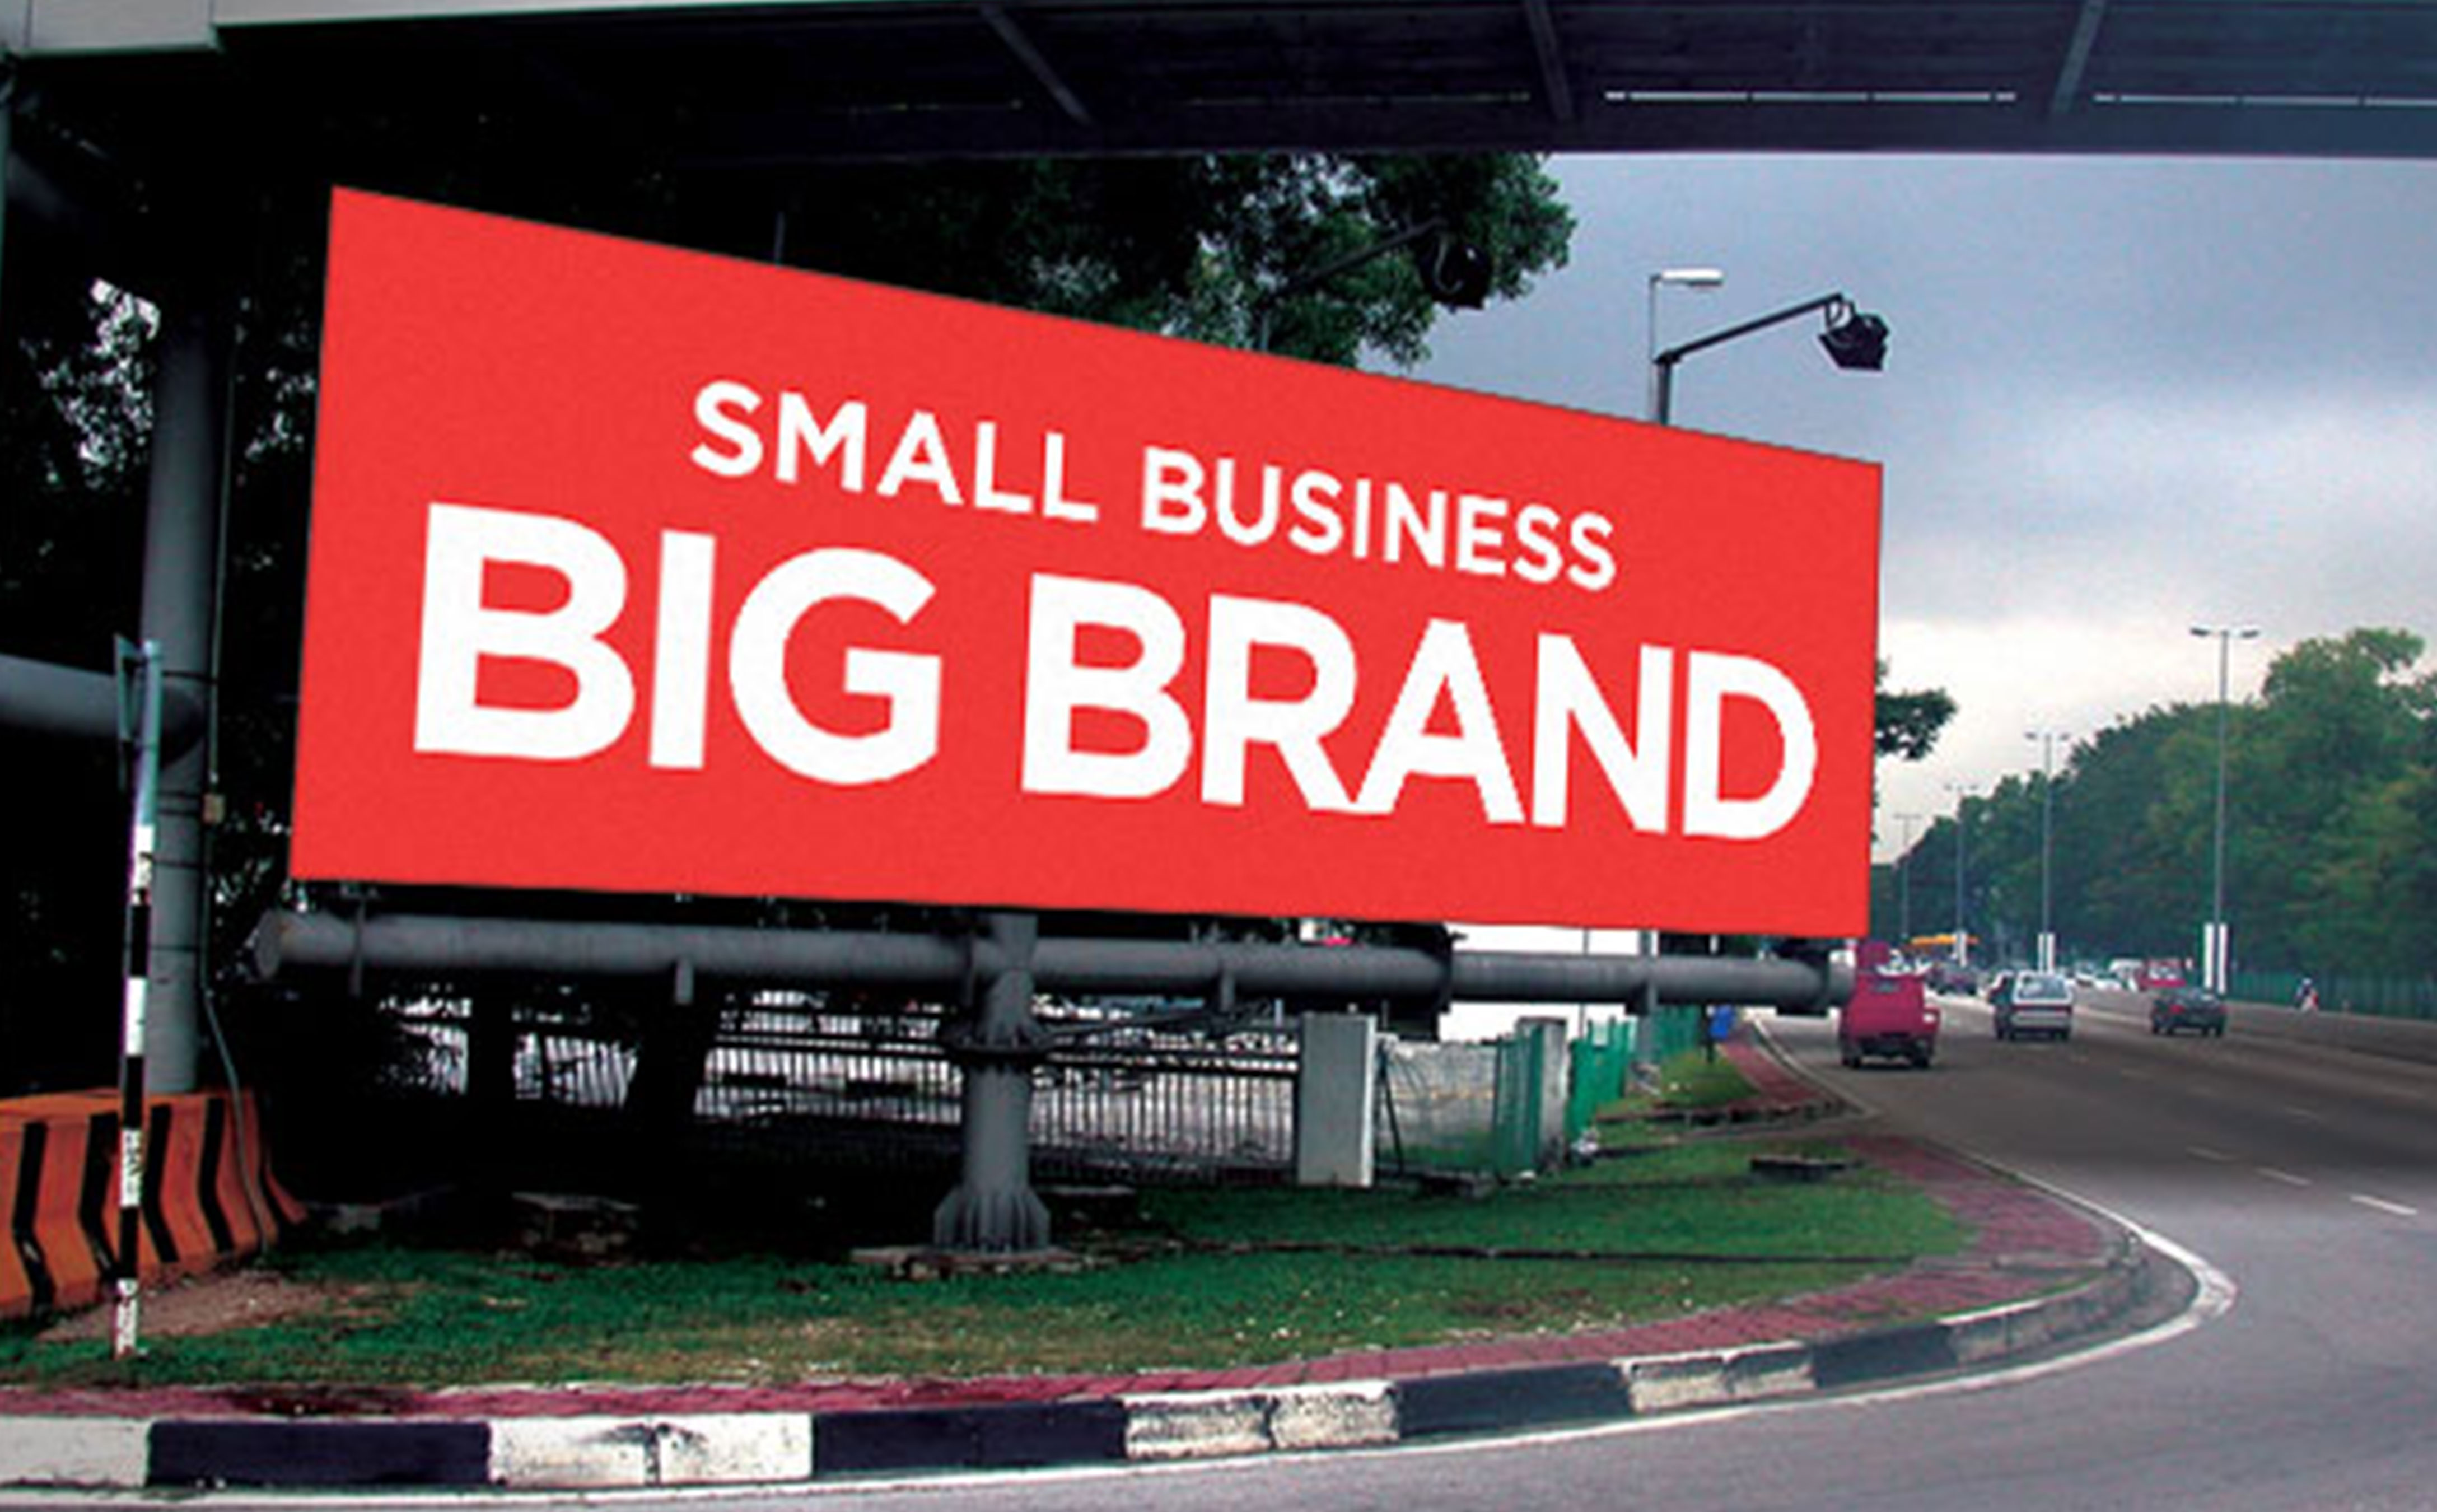 11 Powerful big brand strategies for small business growth